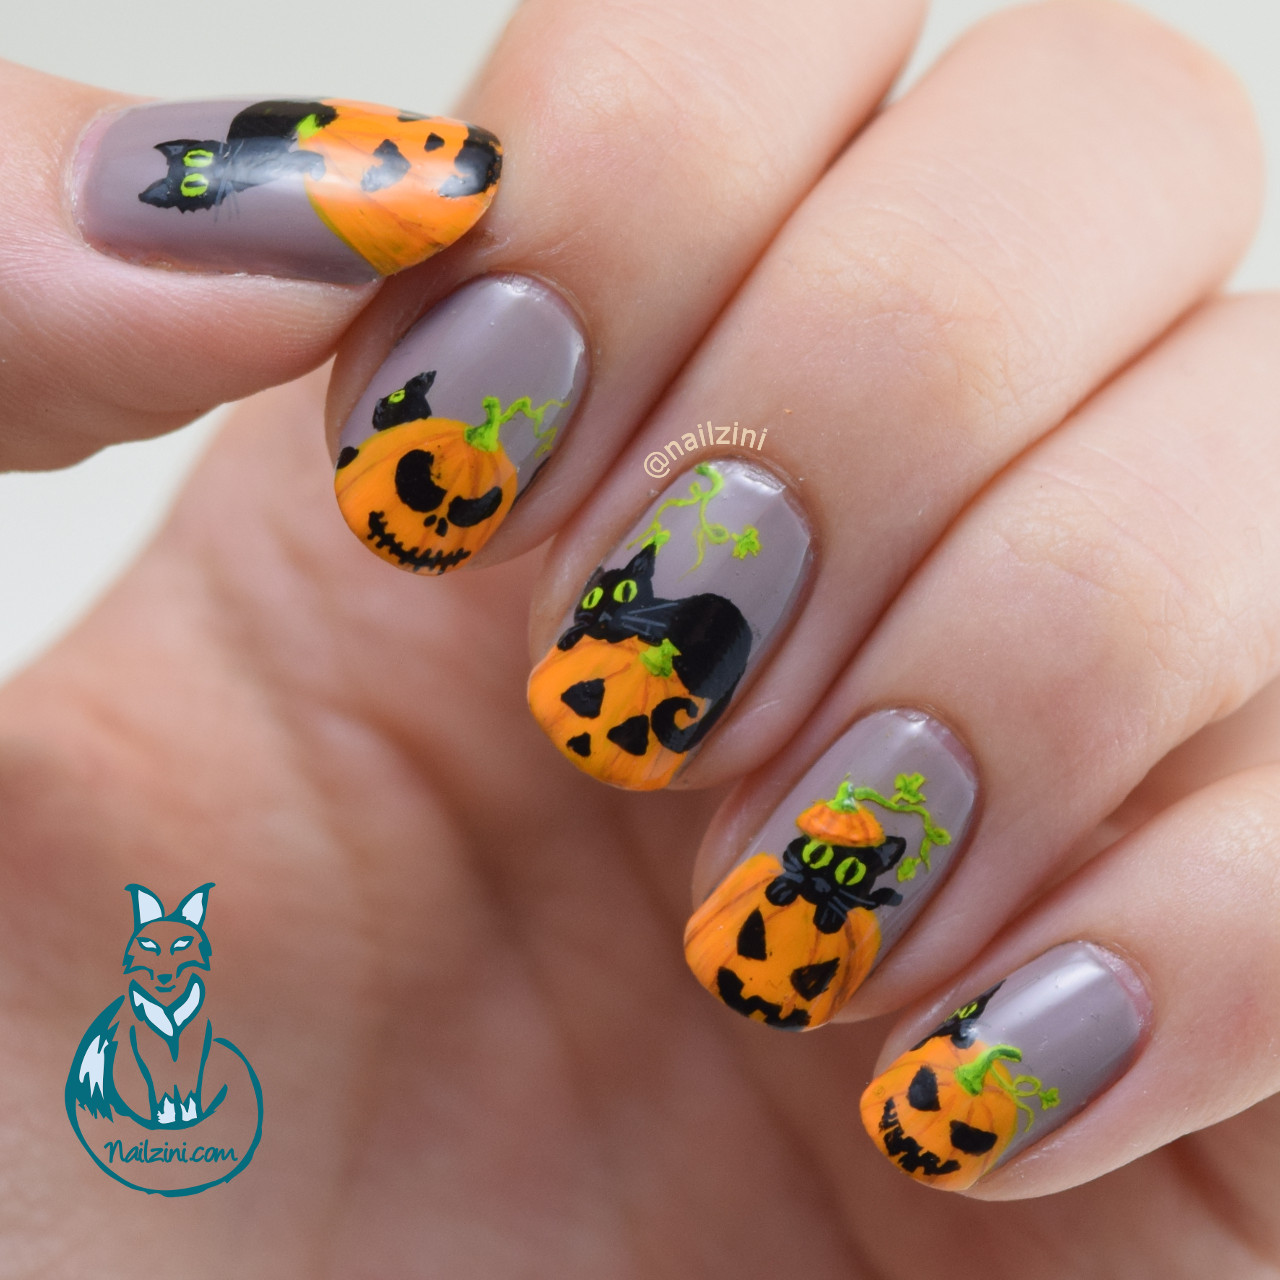 Black cats and pumpkins nail art nailzini a nail art blog black cats and pumpkins nail art prinsesfo Choice Image